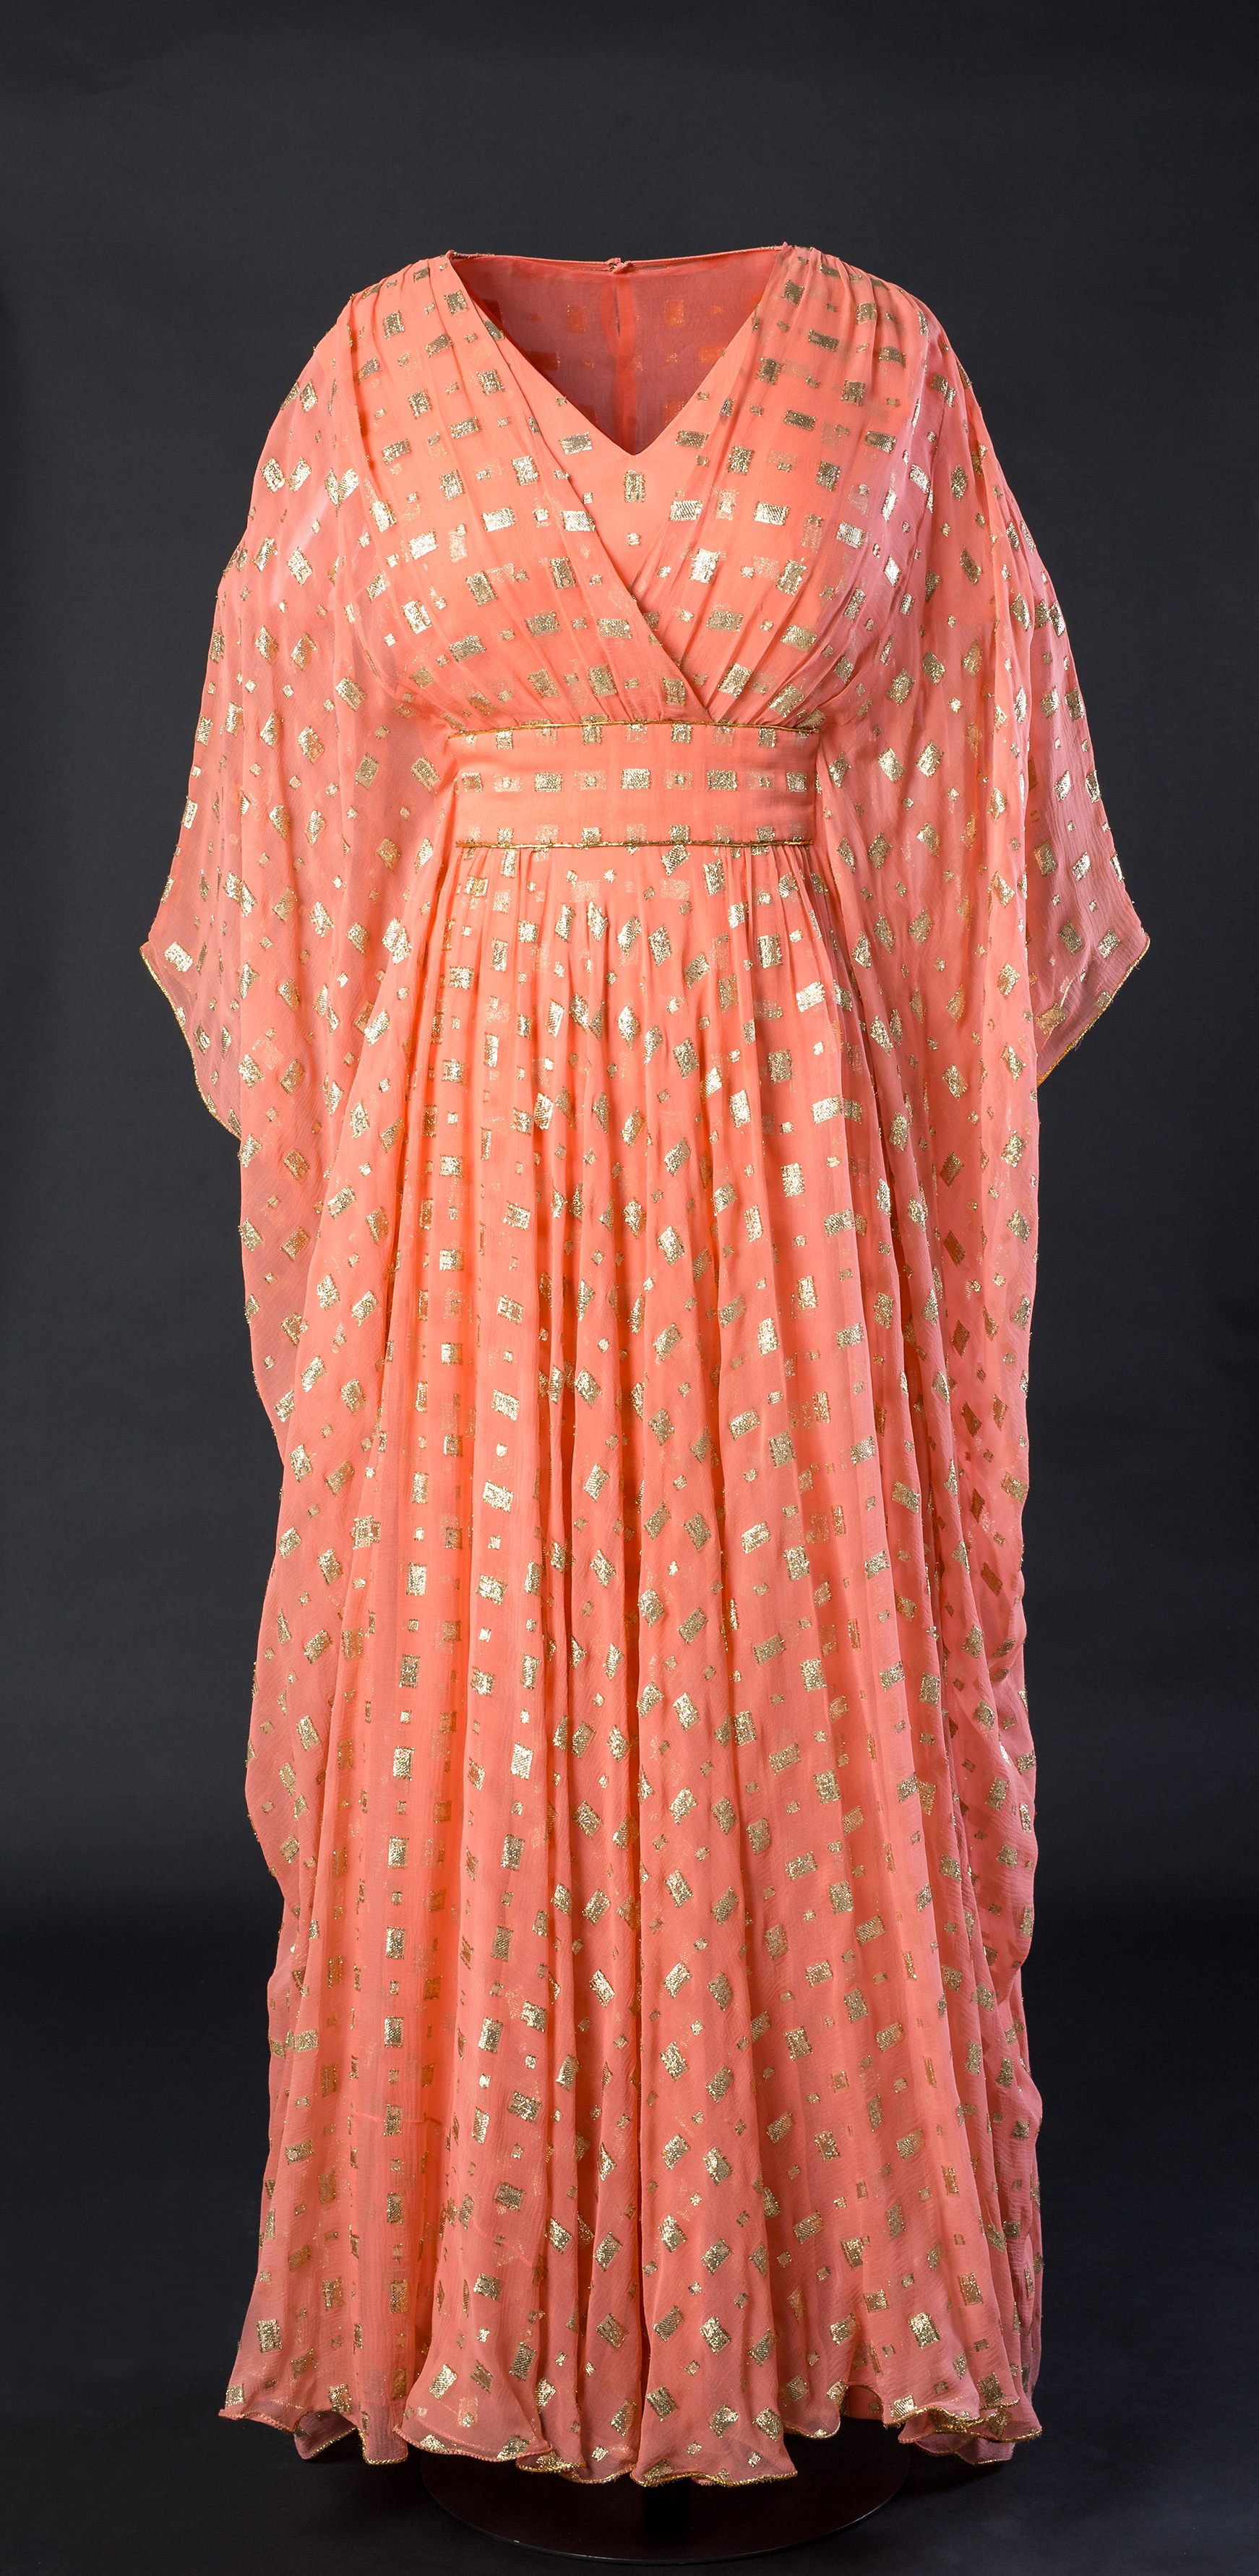 New Kensington Palace Fashion Exhibit Features Pieces From ...